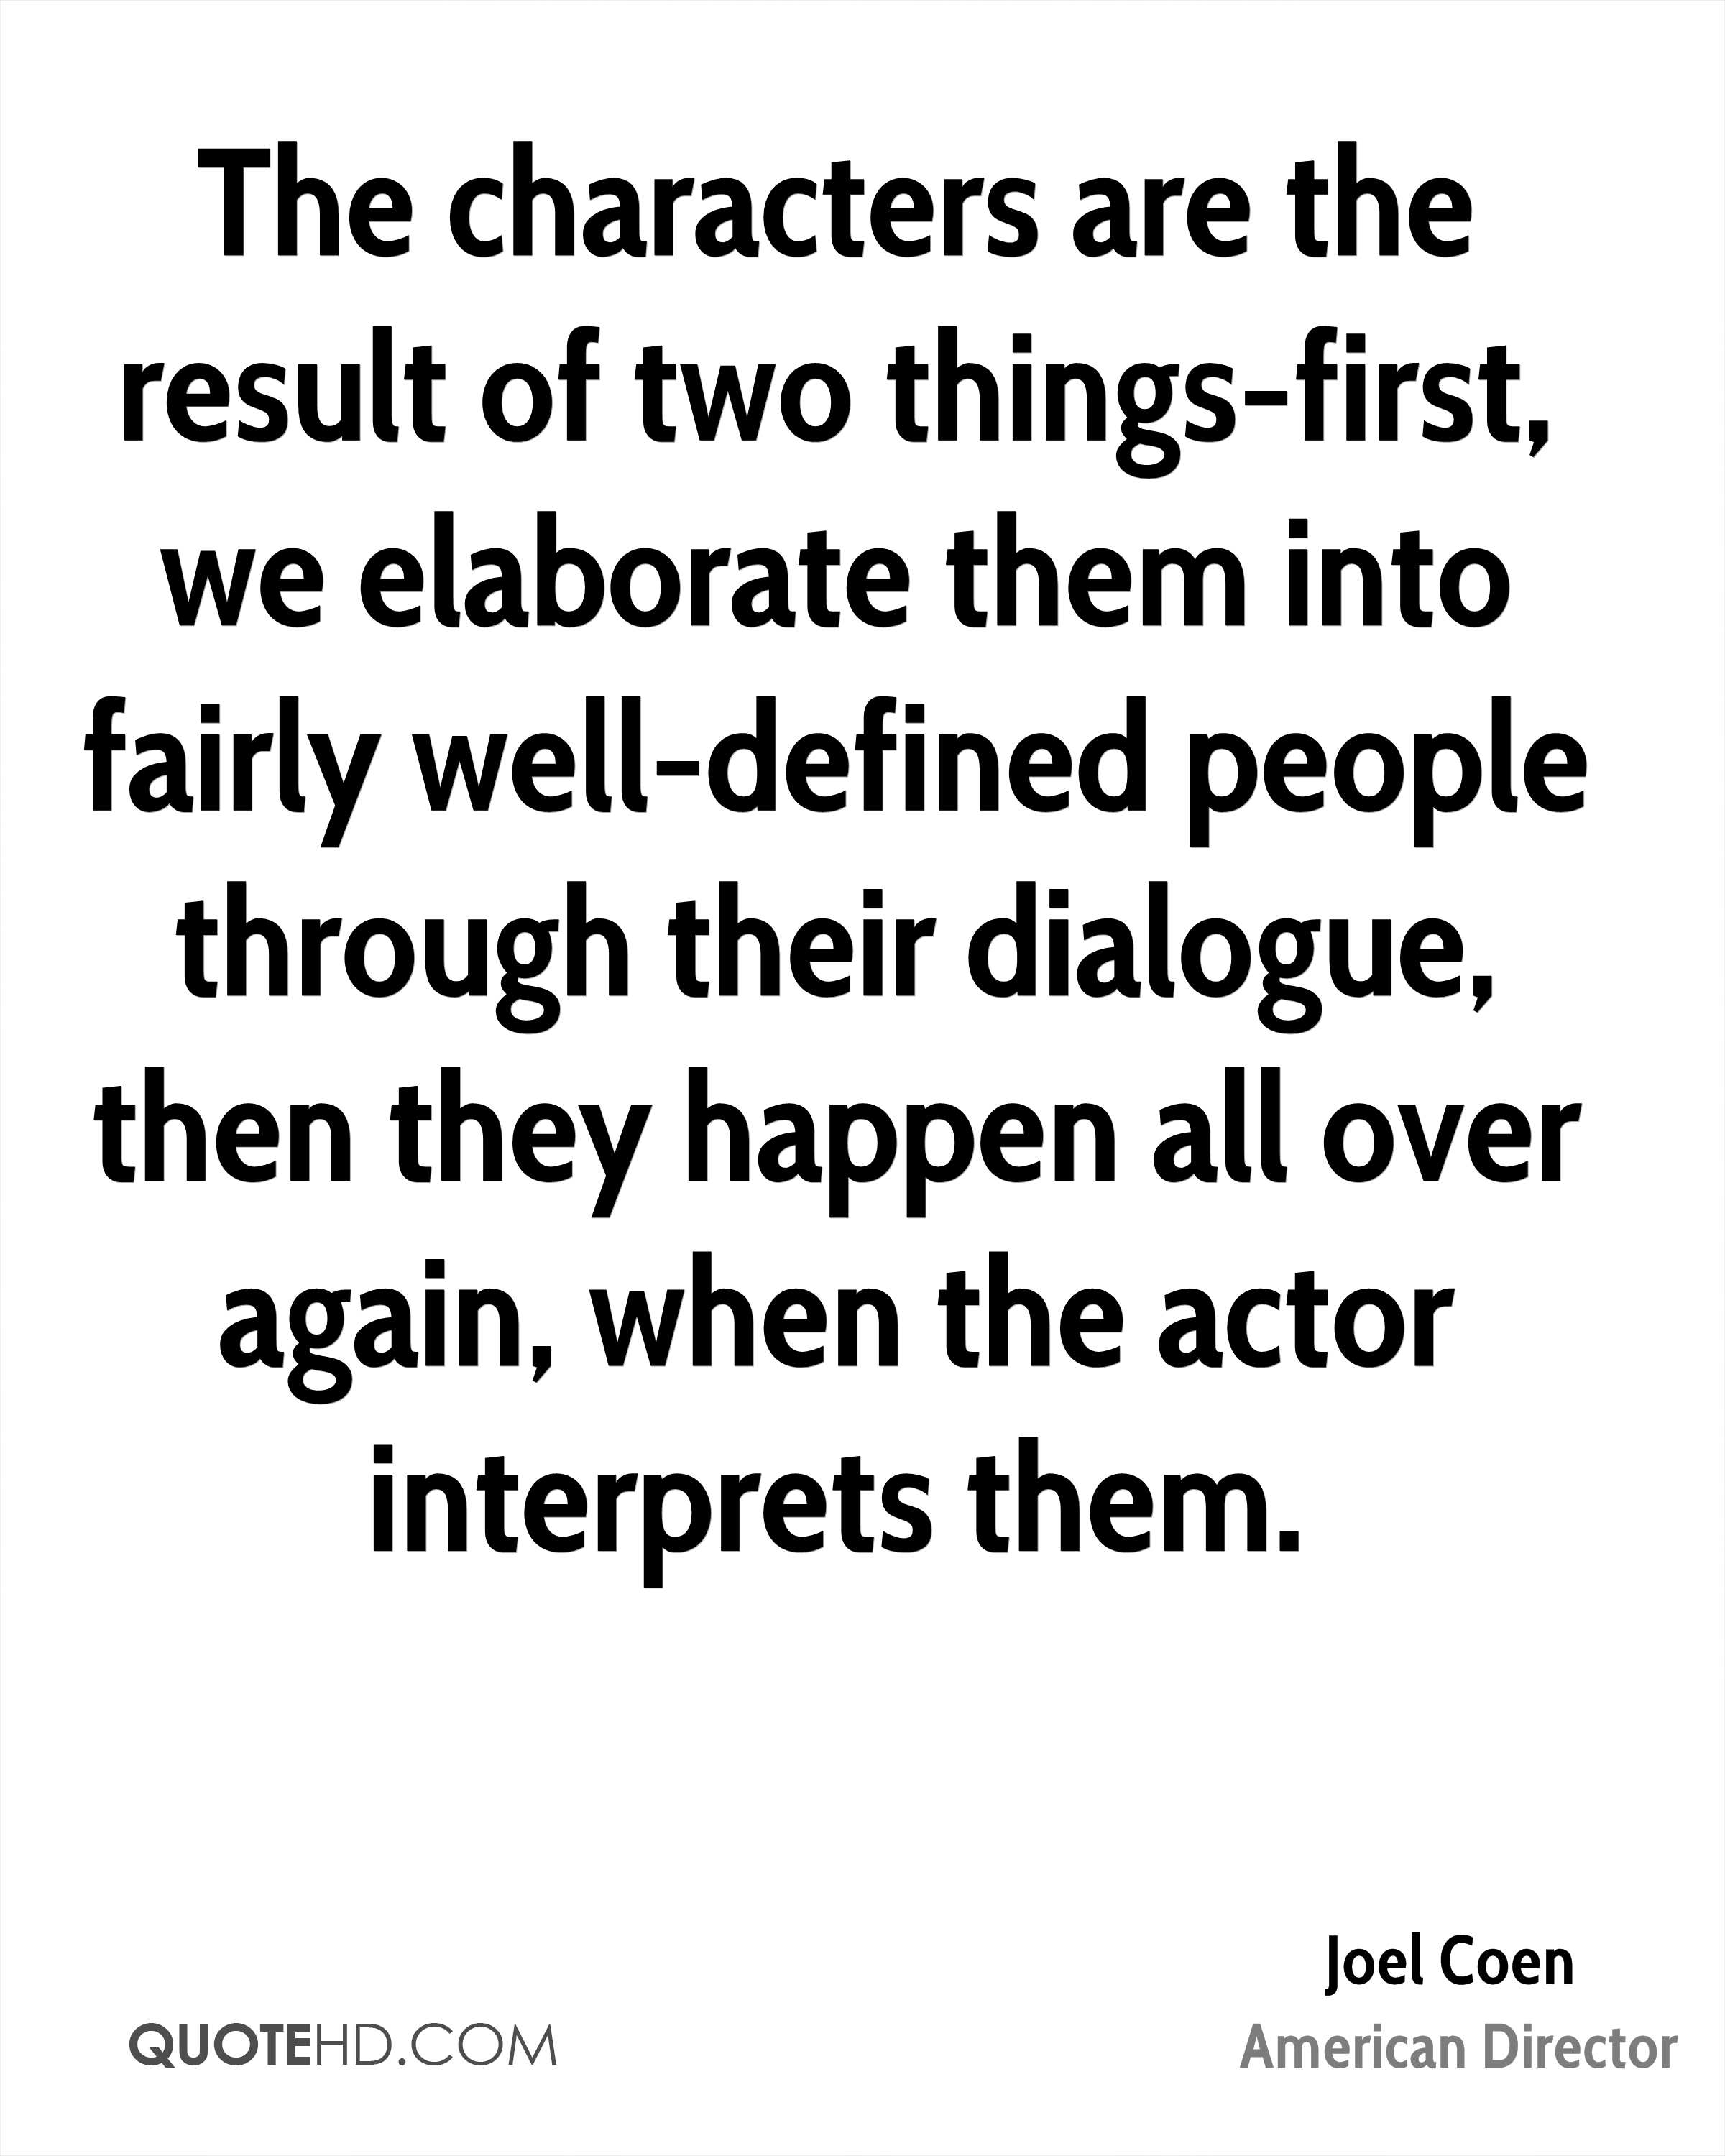 The characters are the result of two things-first, we elaborate them into fairly well-defined people through their dialogue, then they happen all over again, when the actor interprets them.